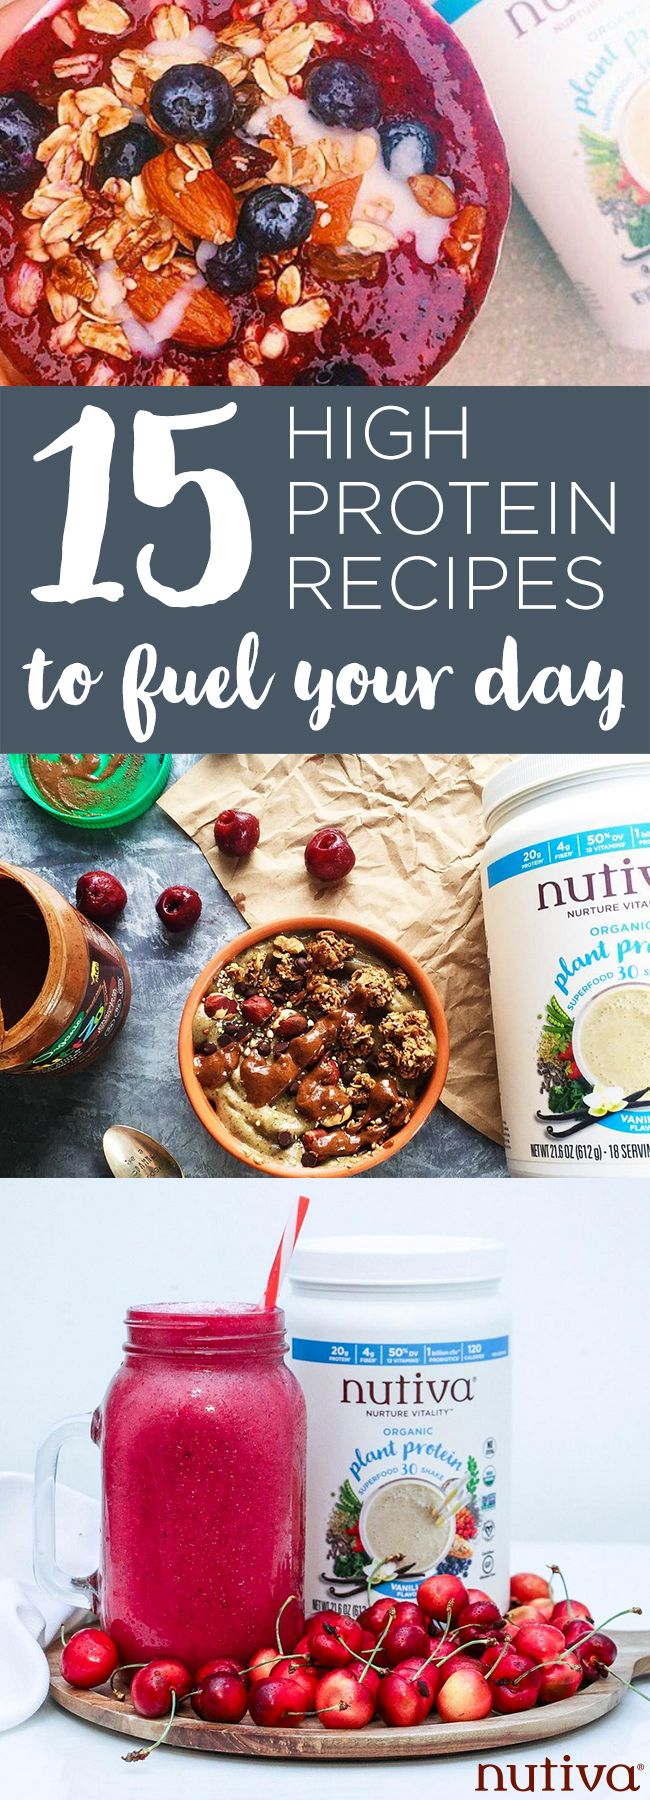 15 High Protein Recipes to Fuel Your Day kitchen.nutiva.com